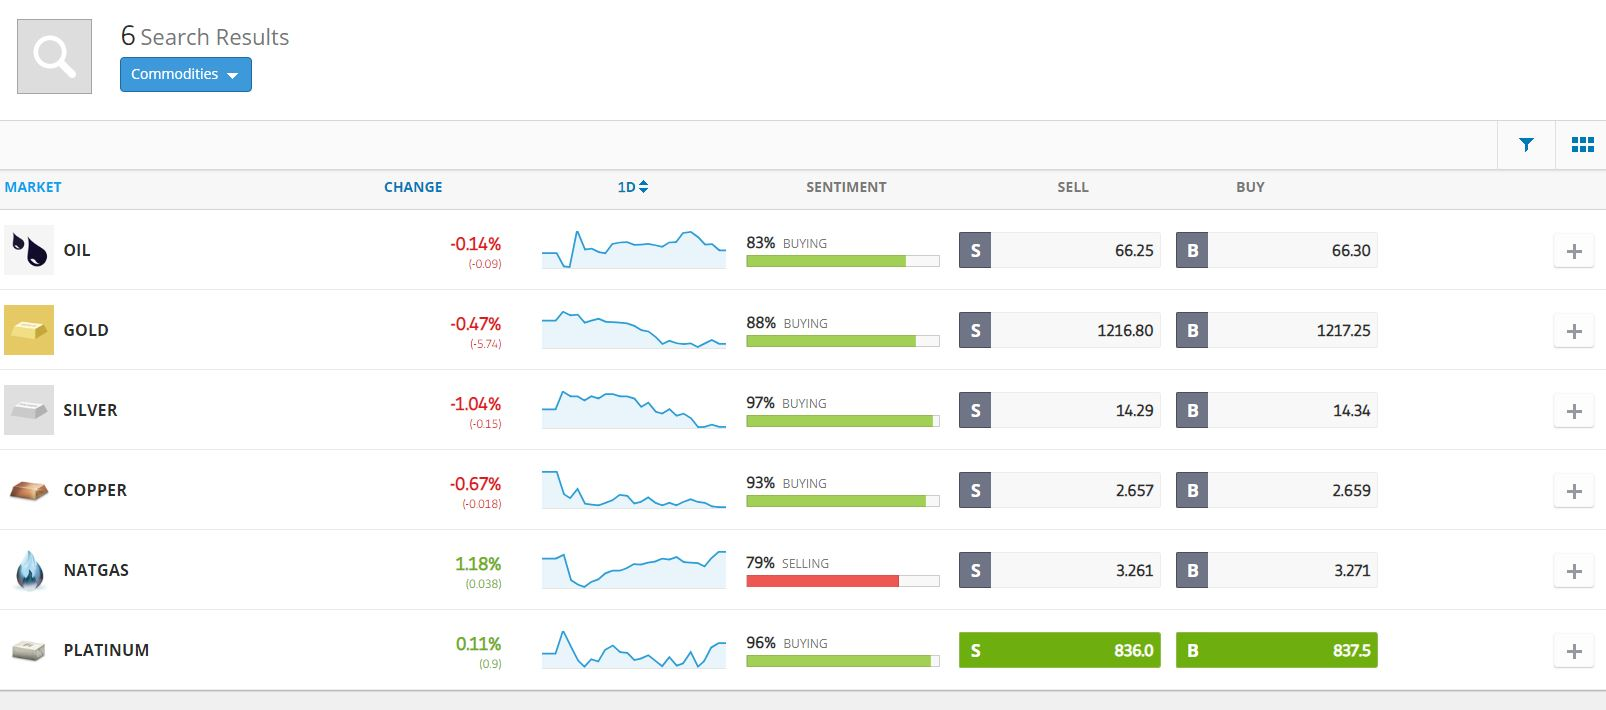 Screenshot of the commodities that can be traded within eToro